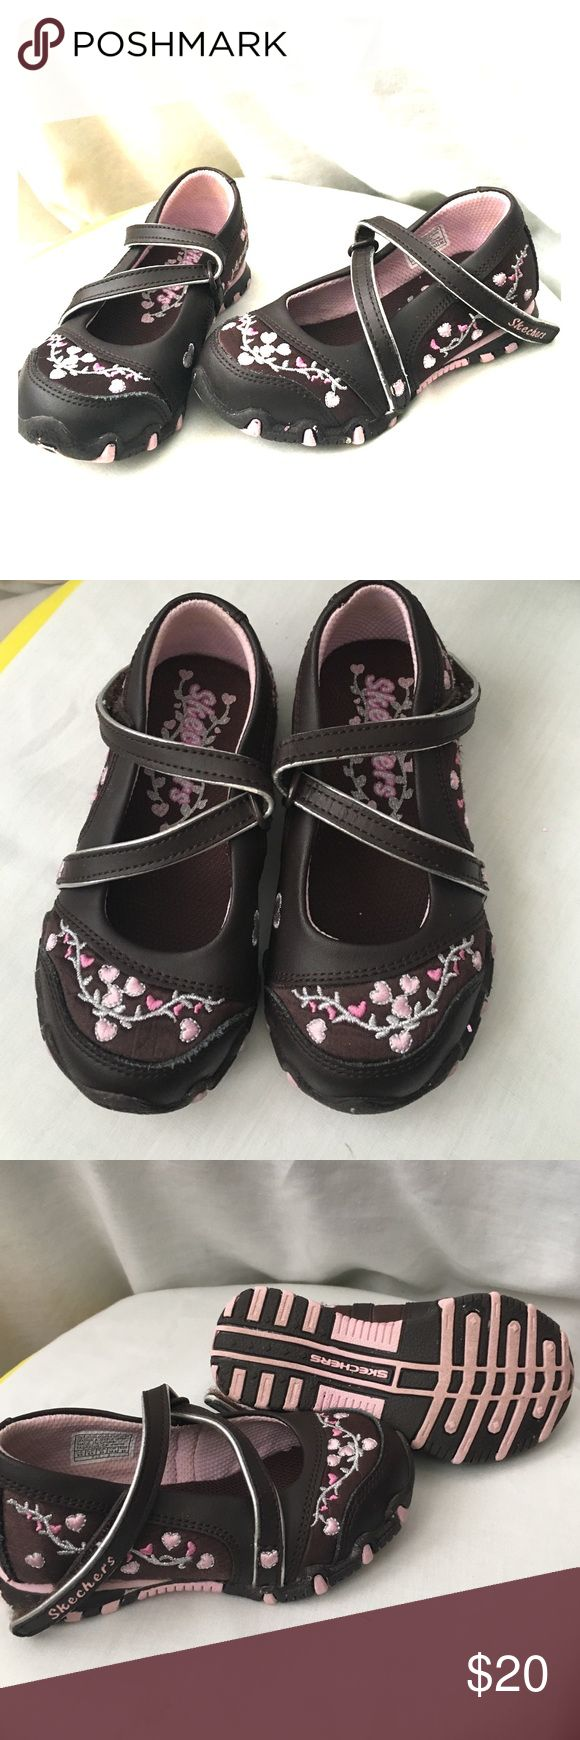 acb590ce8b0f skechers inserts for sale   OFF48% Discounts